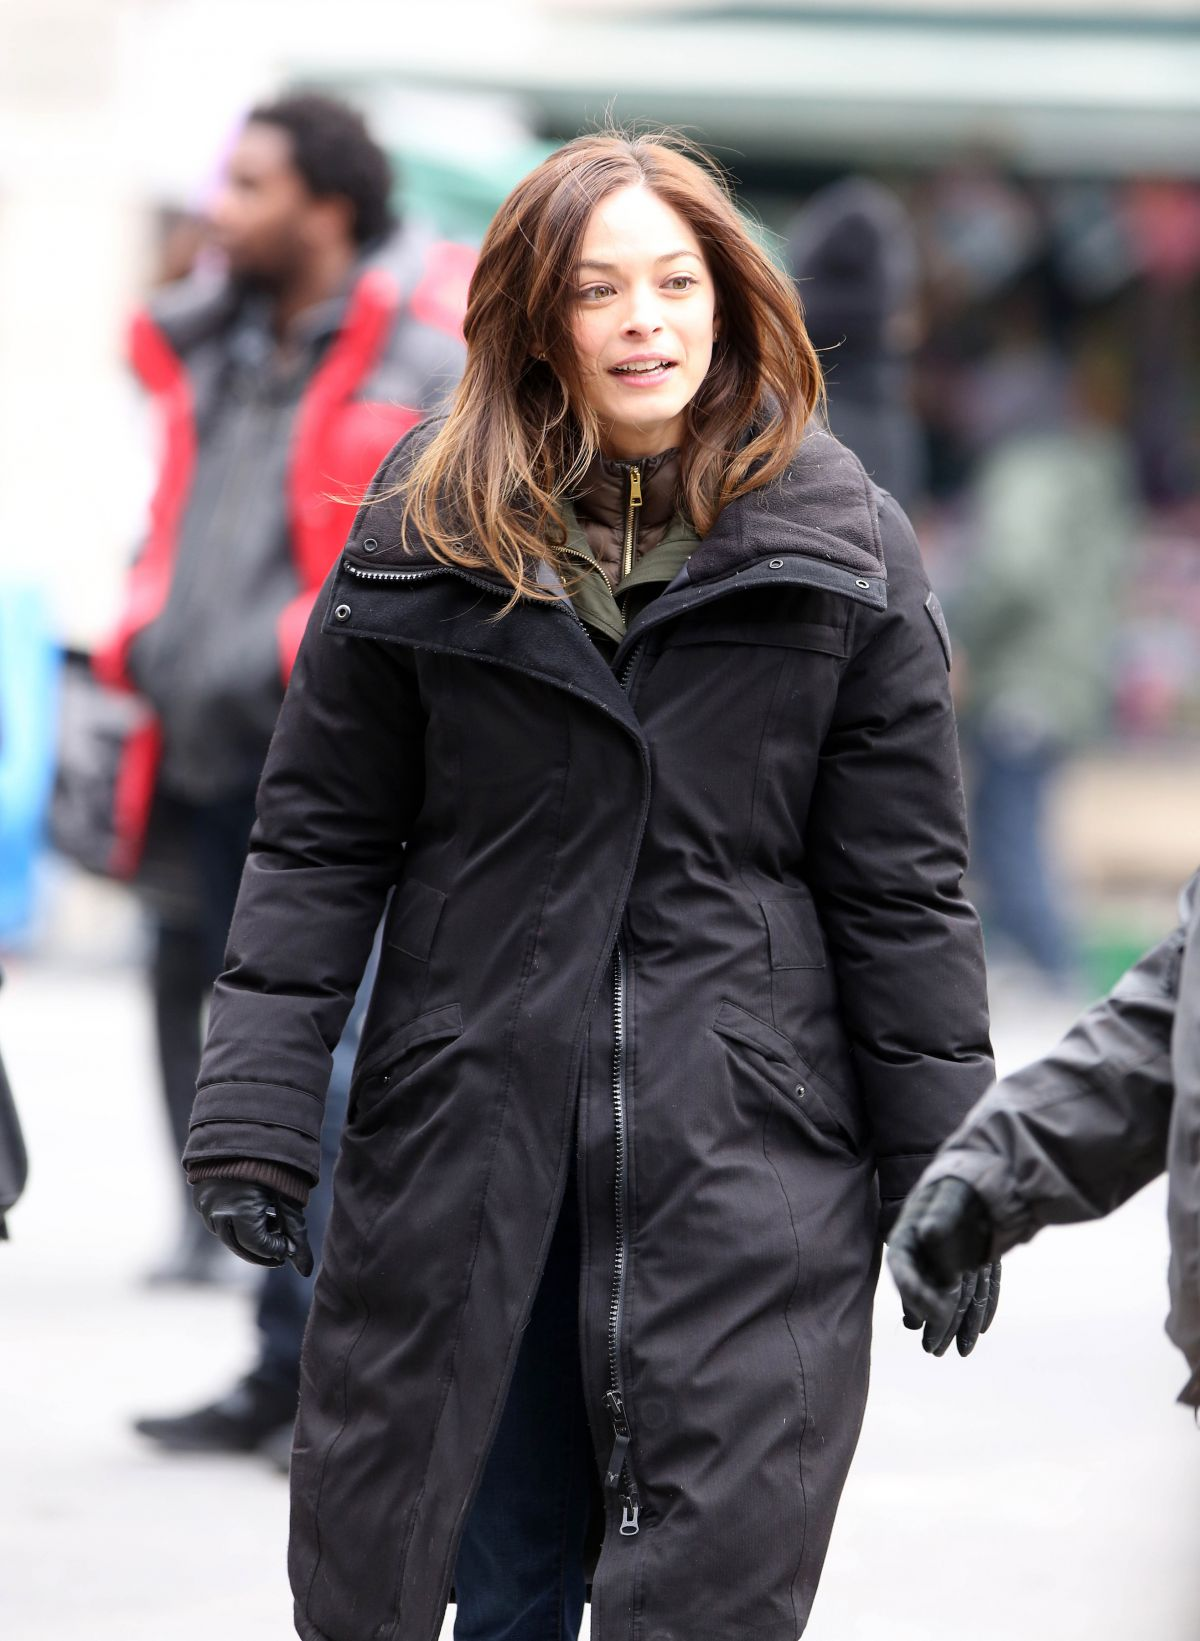 KRISTIN KREUK on the Set of Beaty and the Beast in Toronto